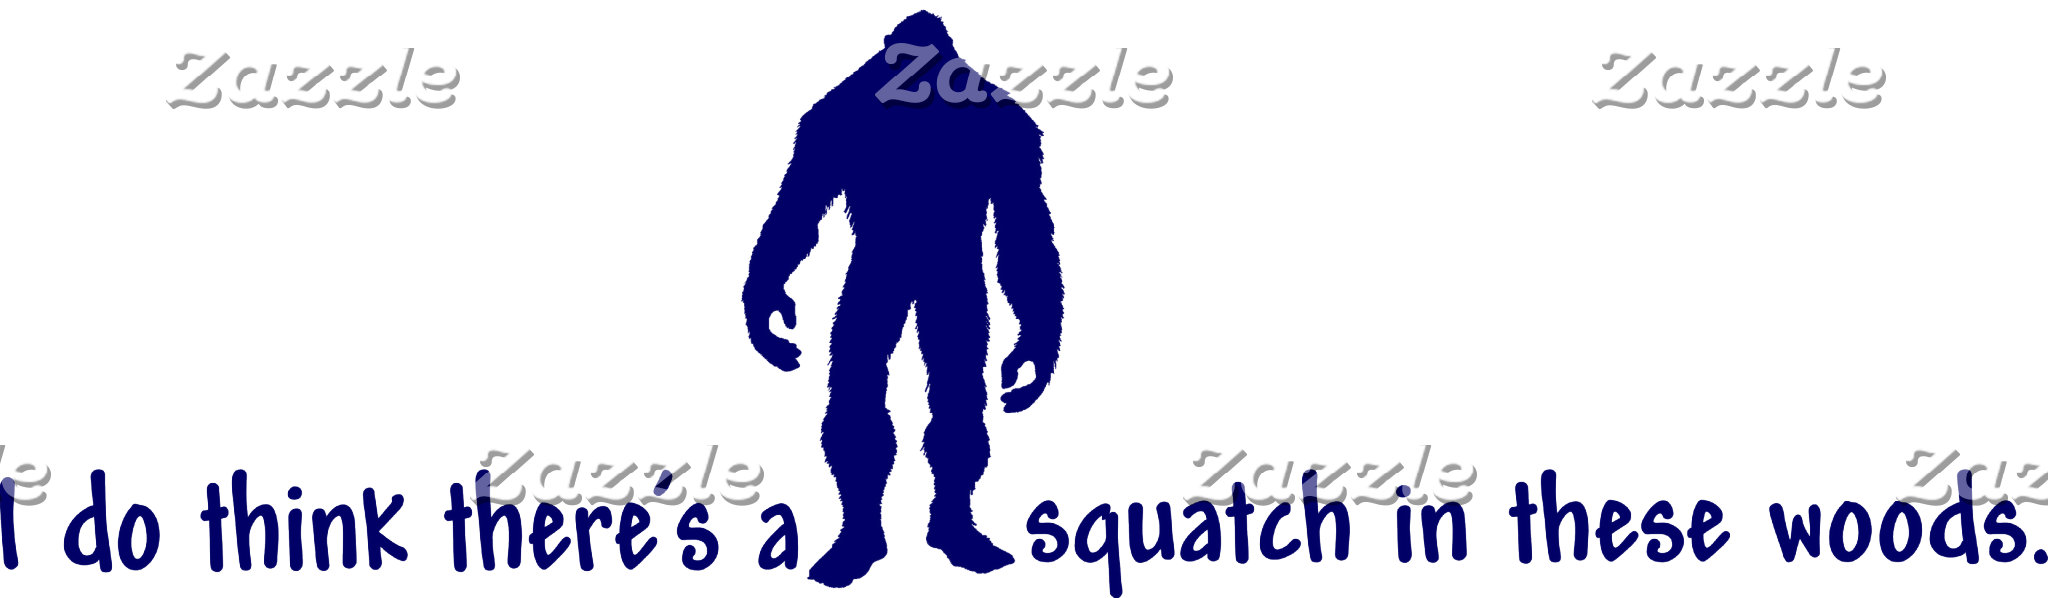 THERE'S A SQUATCH IN THESE WOODS